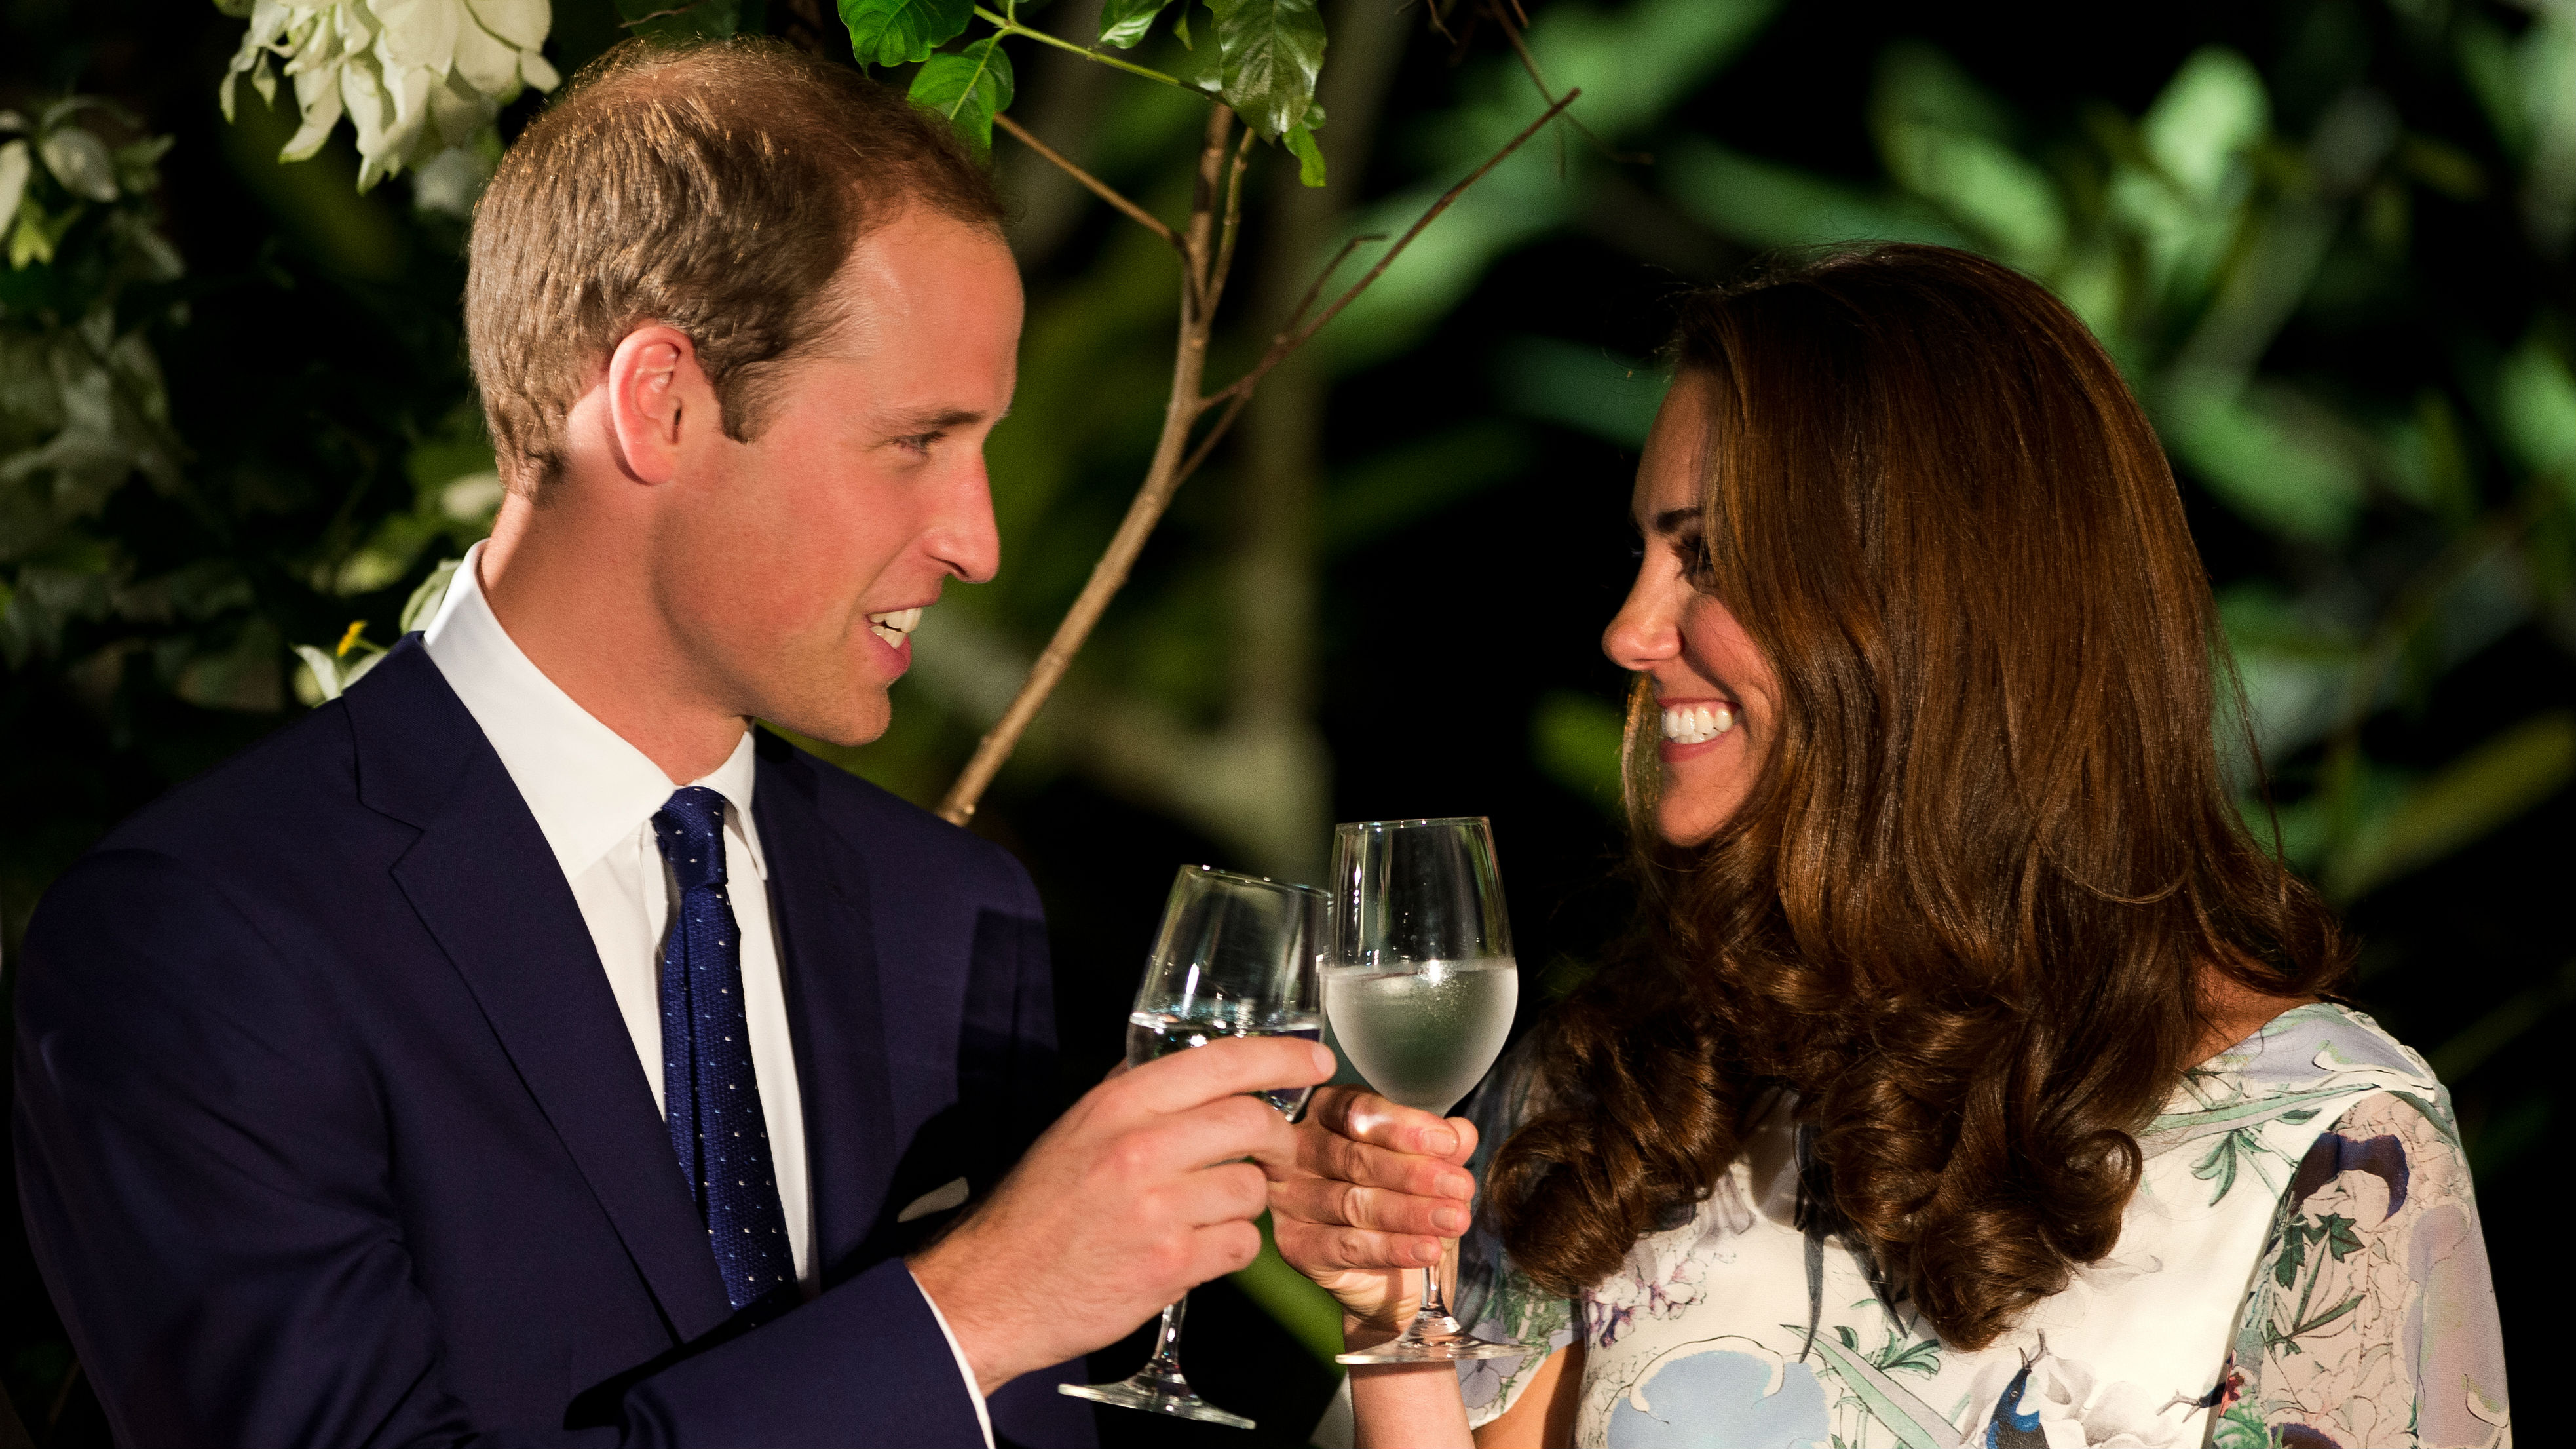 Britain's Prince William and his wife Catherine, the Duchess of Cambridge, make a toast in the honor of Queen Elizabeth's Diamond Jubilee at a British Gala reception at the Eden Hall in Singapore on Wednesday September 12, 2012. Britain's Prince William and his wife Catherine arrived in Singapore on September 11 to kick off a nine-day Southeast Asian and Pacific tour marking Queen Elizabeth II's Diamond Jubilee.